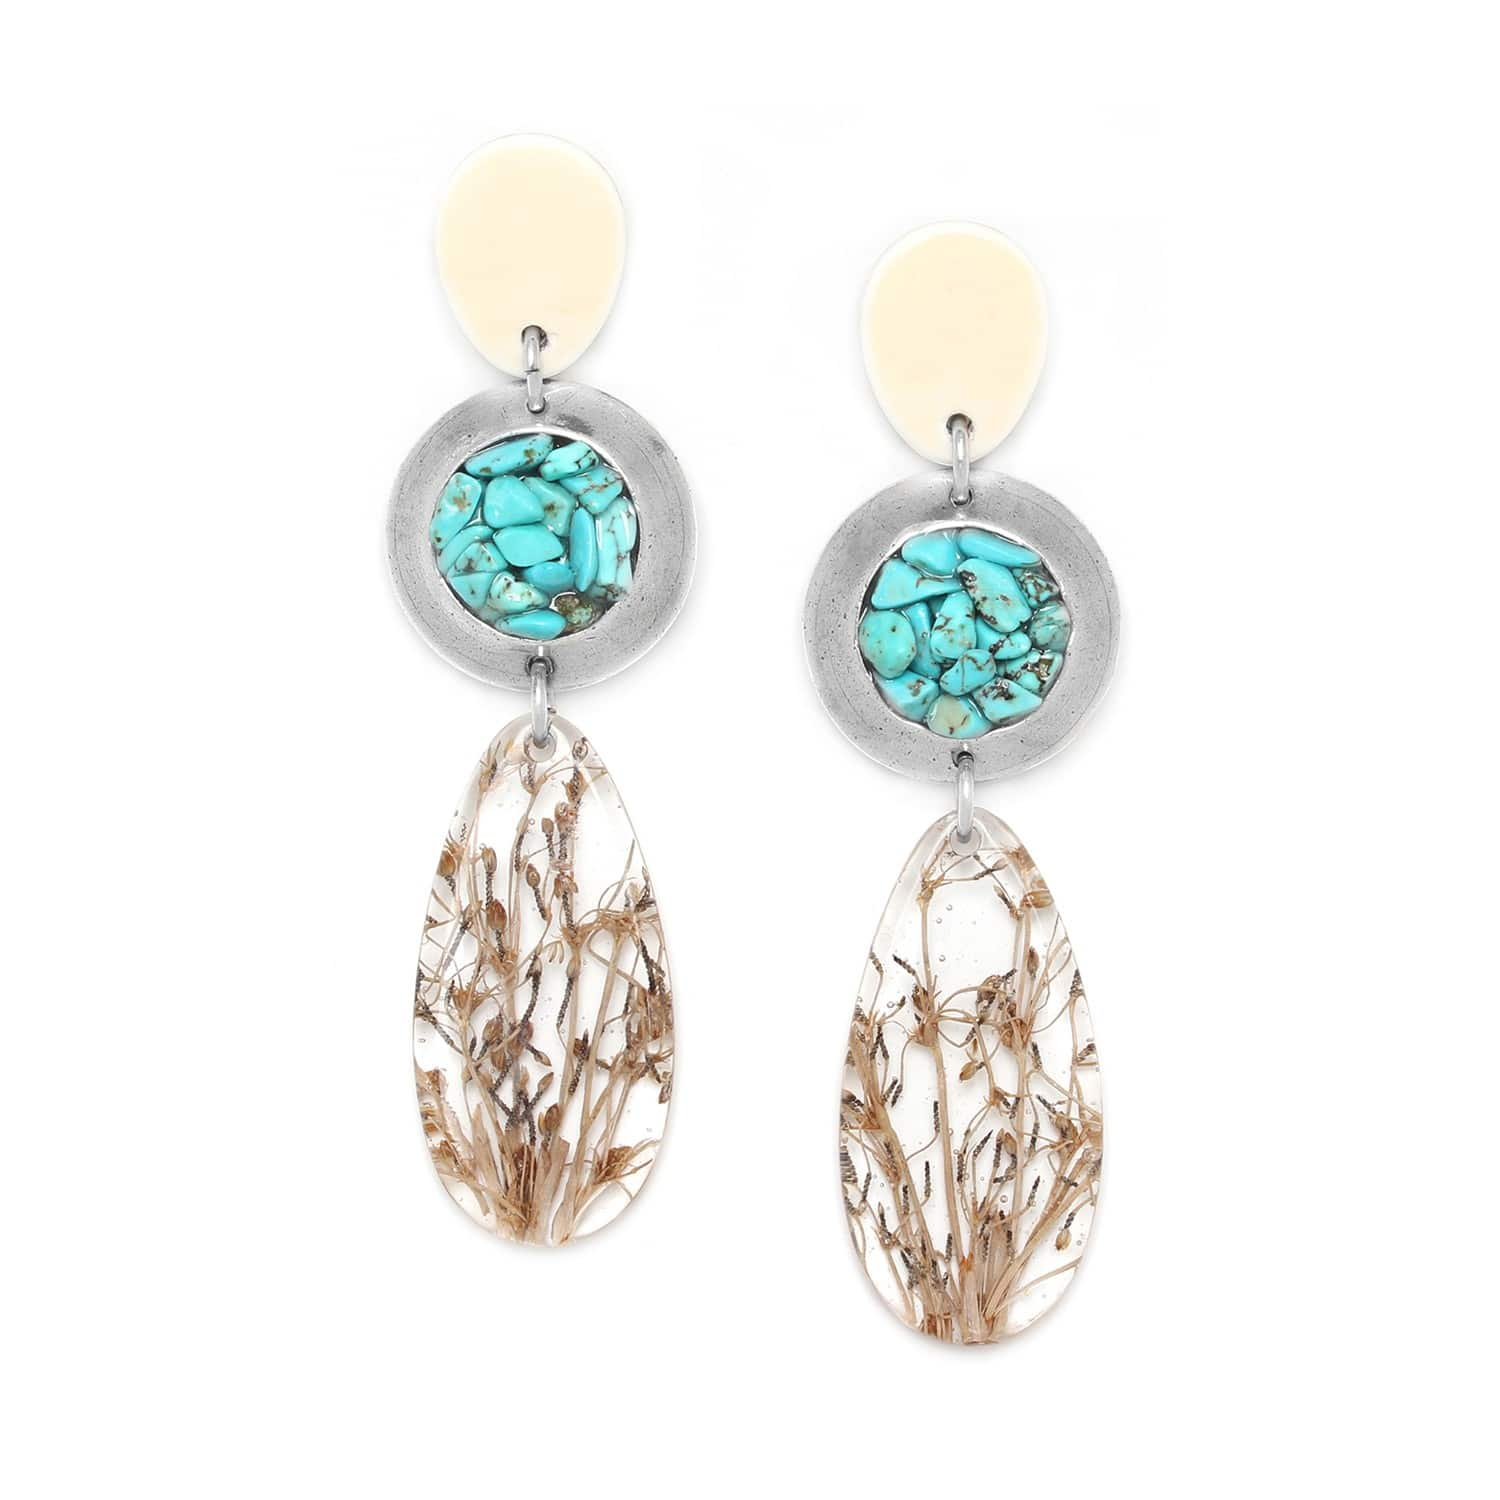 COLORADO long earrings